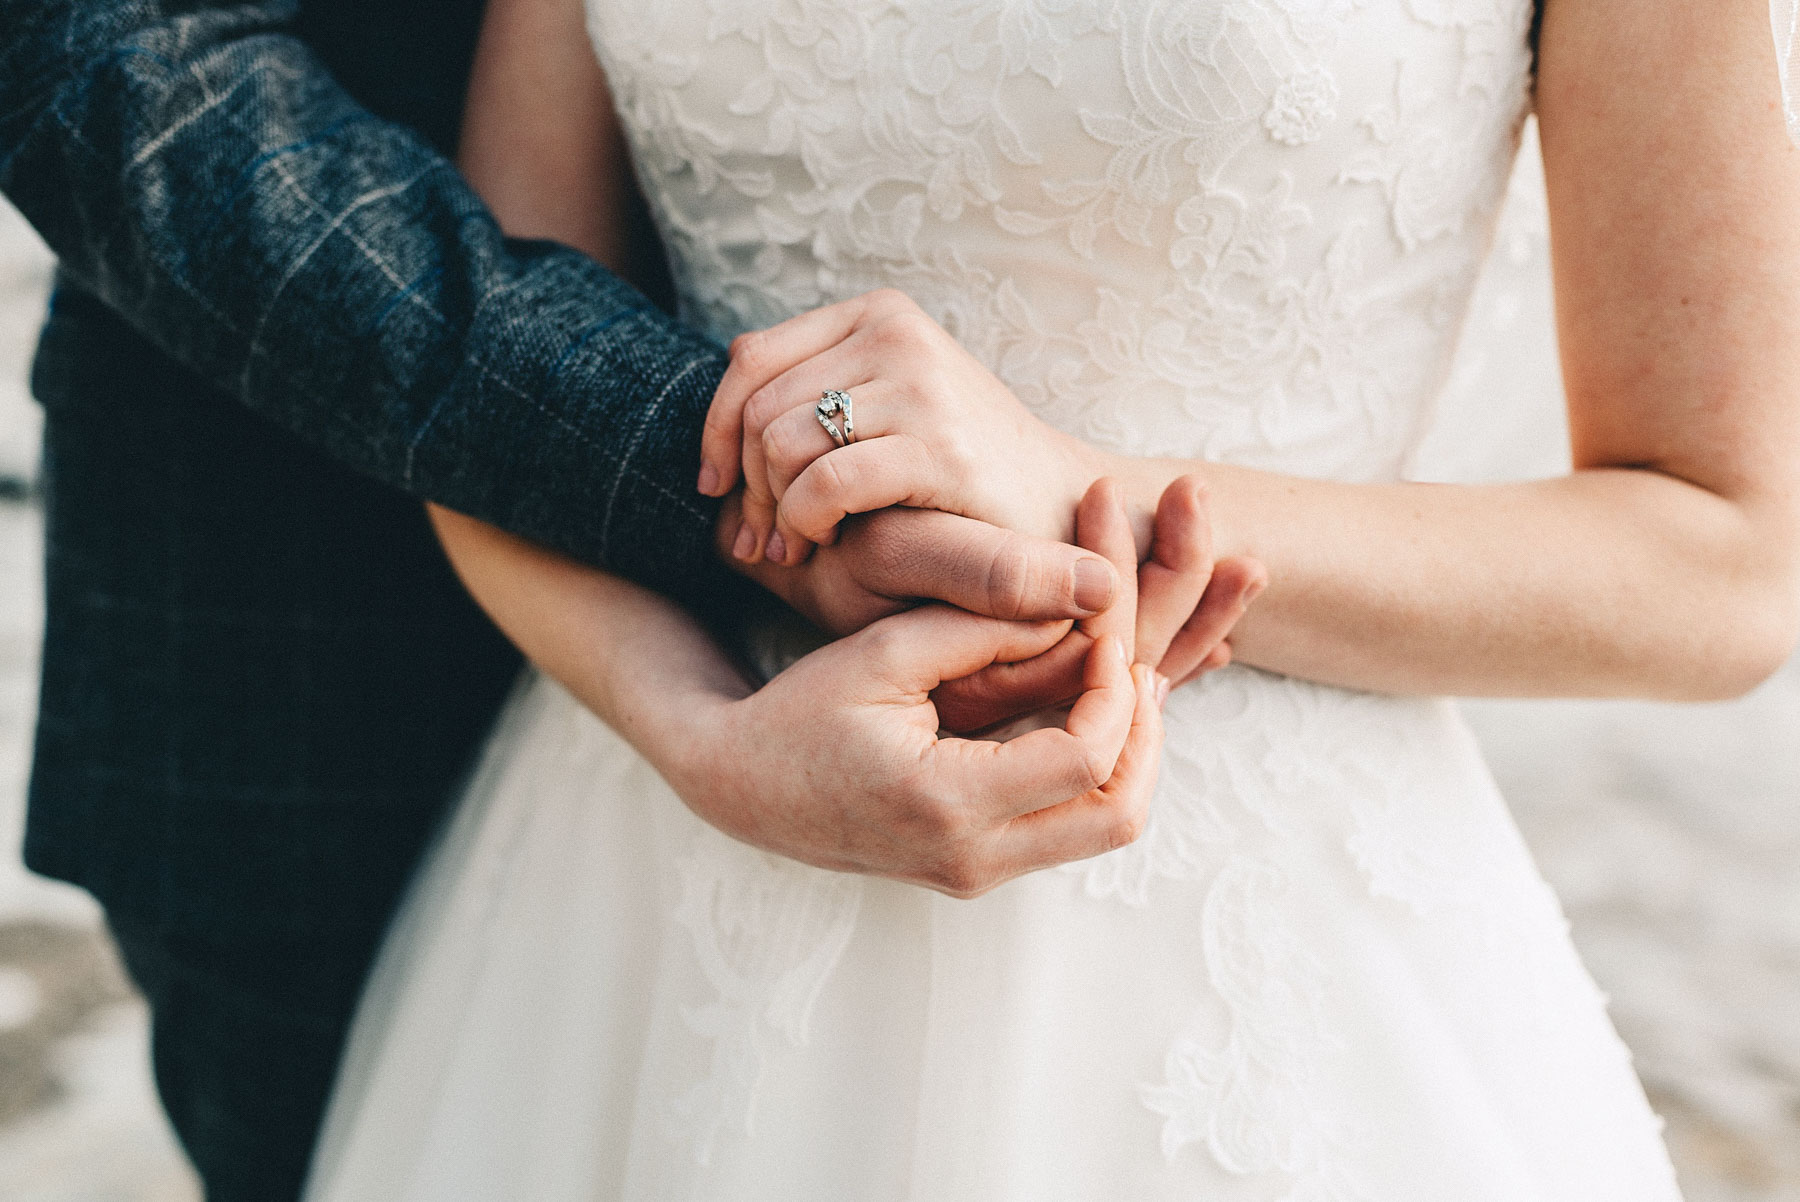 Couples hands showing wedding rings